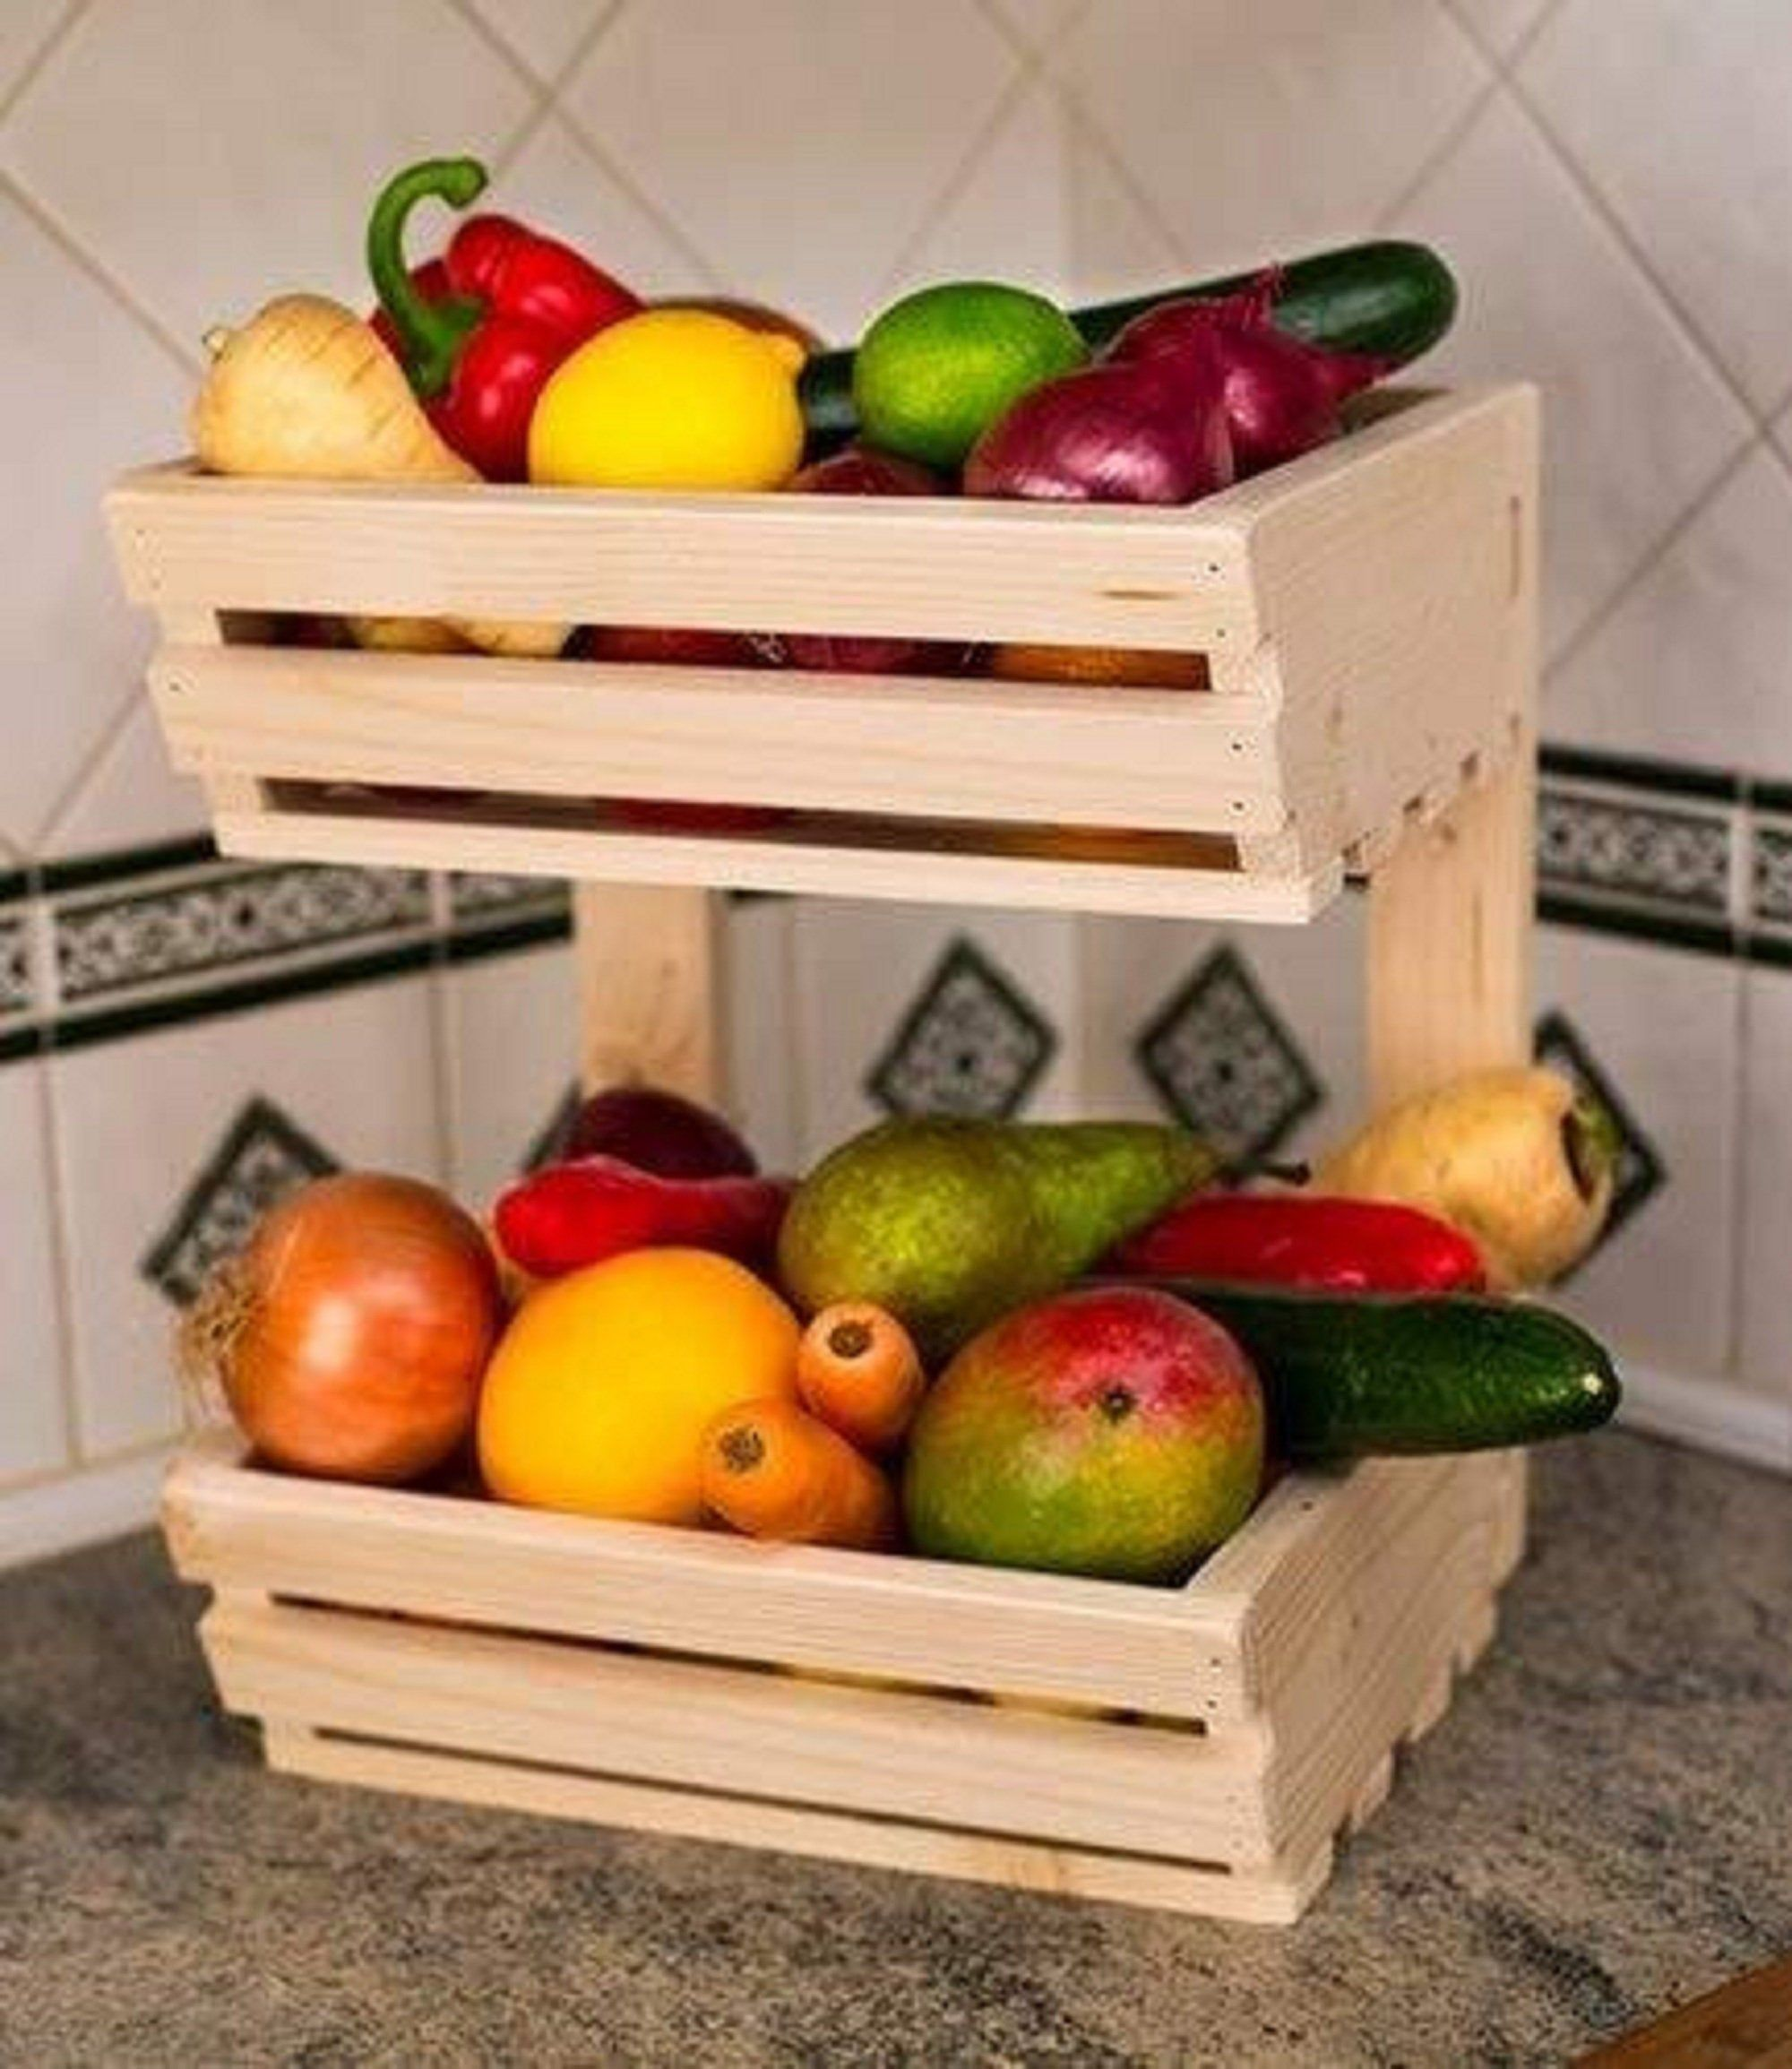 Crate Kitchen Organizer Wooden Crate Apple Crate Vegetable Box Etsy In 2020 Fruit And Vegetable Storage Vegetable Bin Fruit Storage